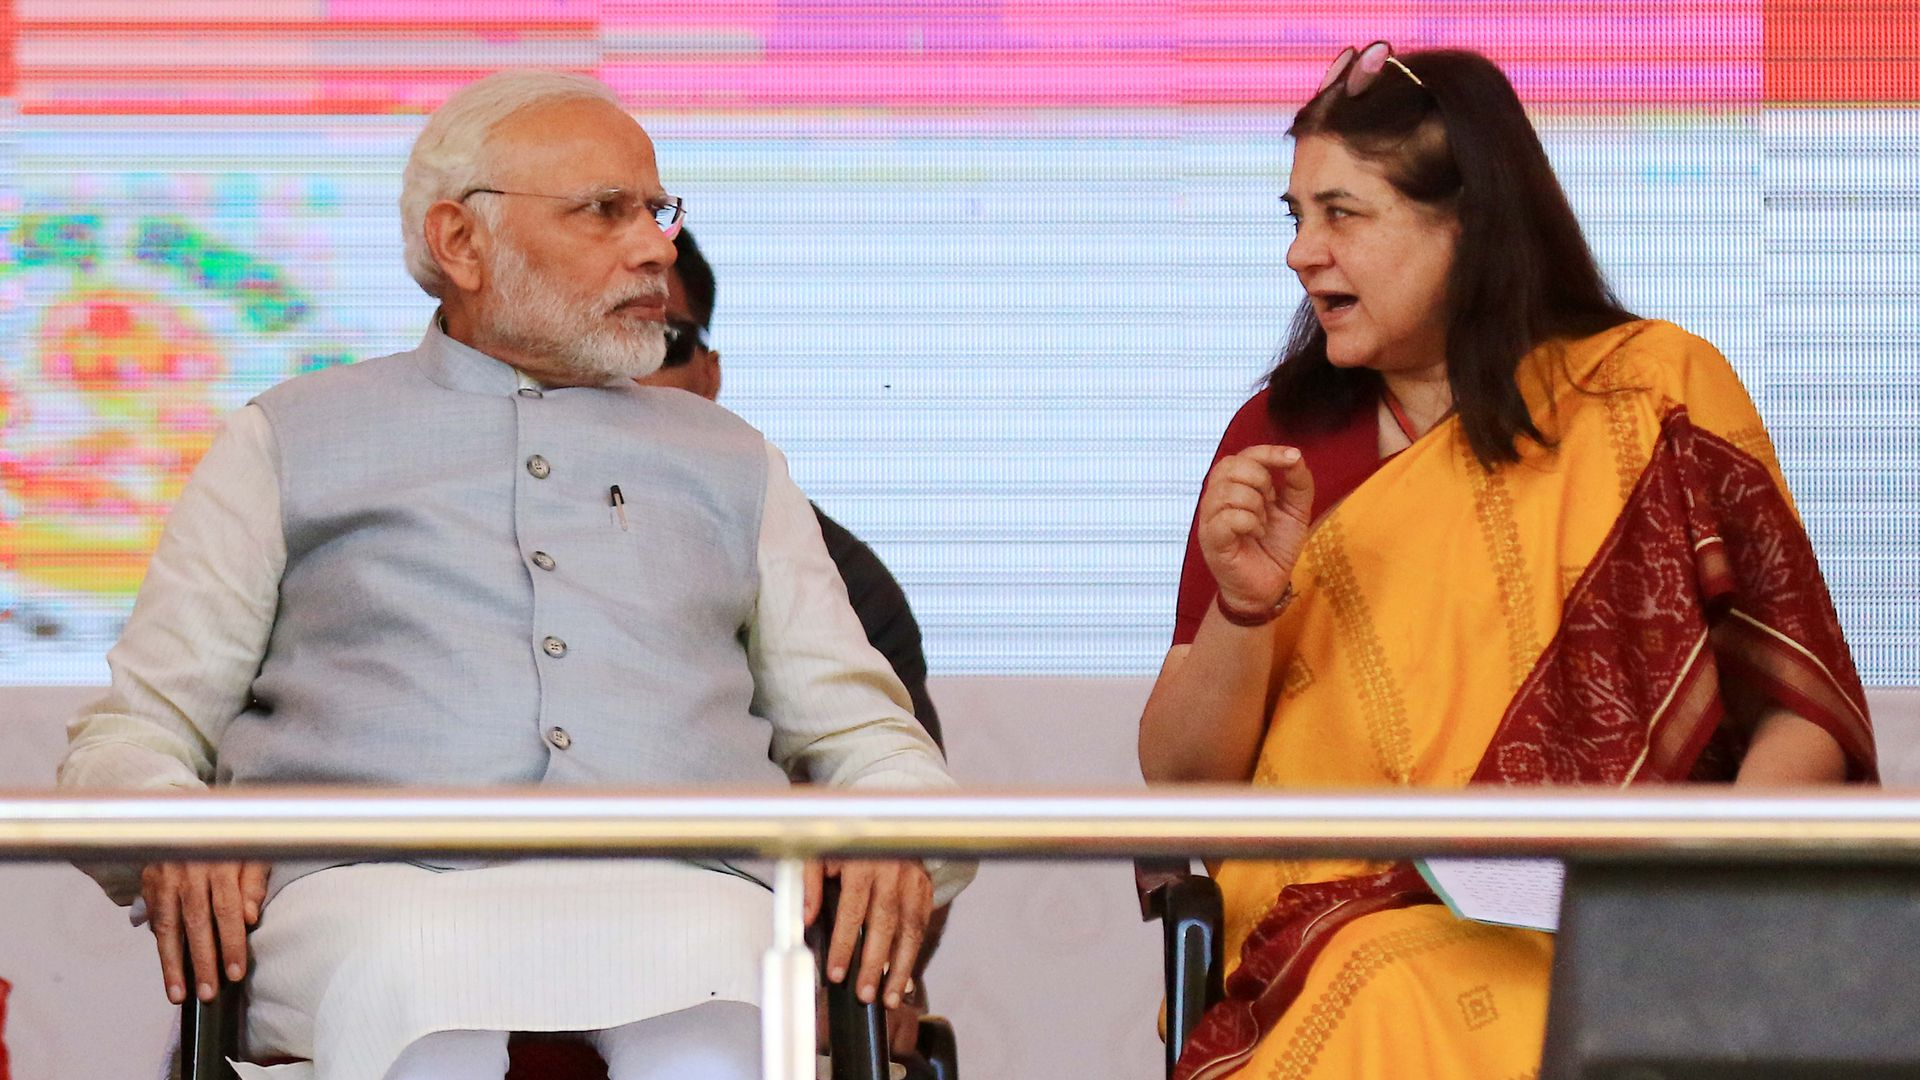 Prime Minister Narendra Modi and Union Minister Maneka Gandhi on International Women's Day